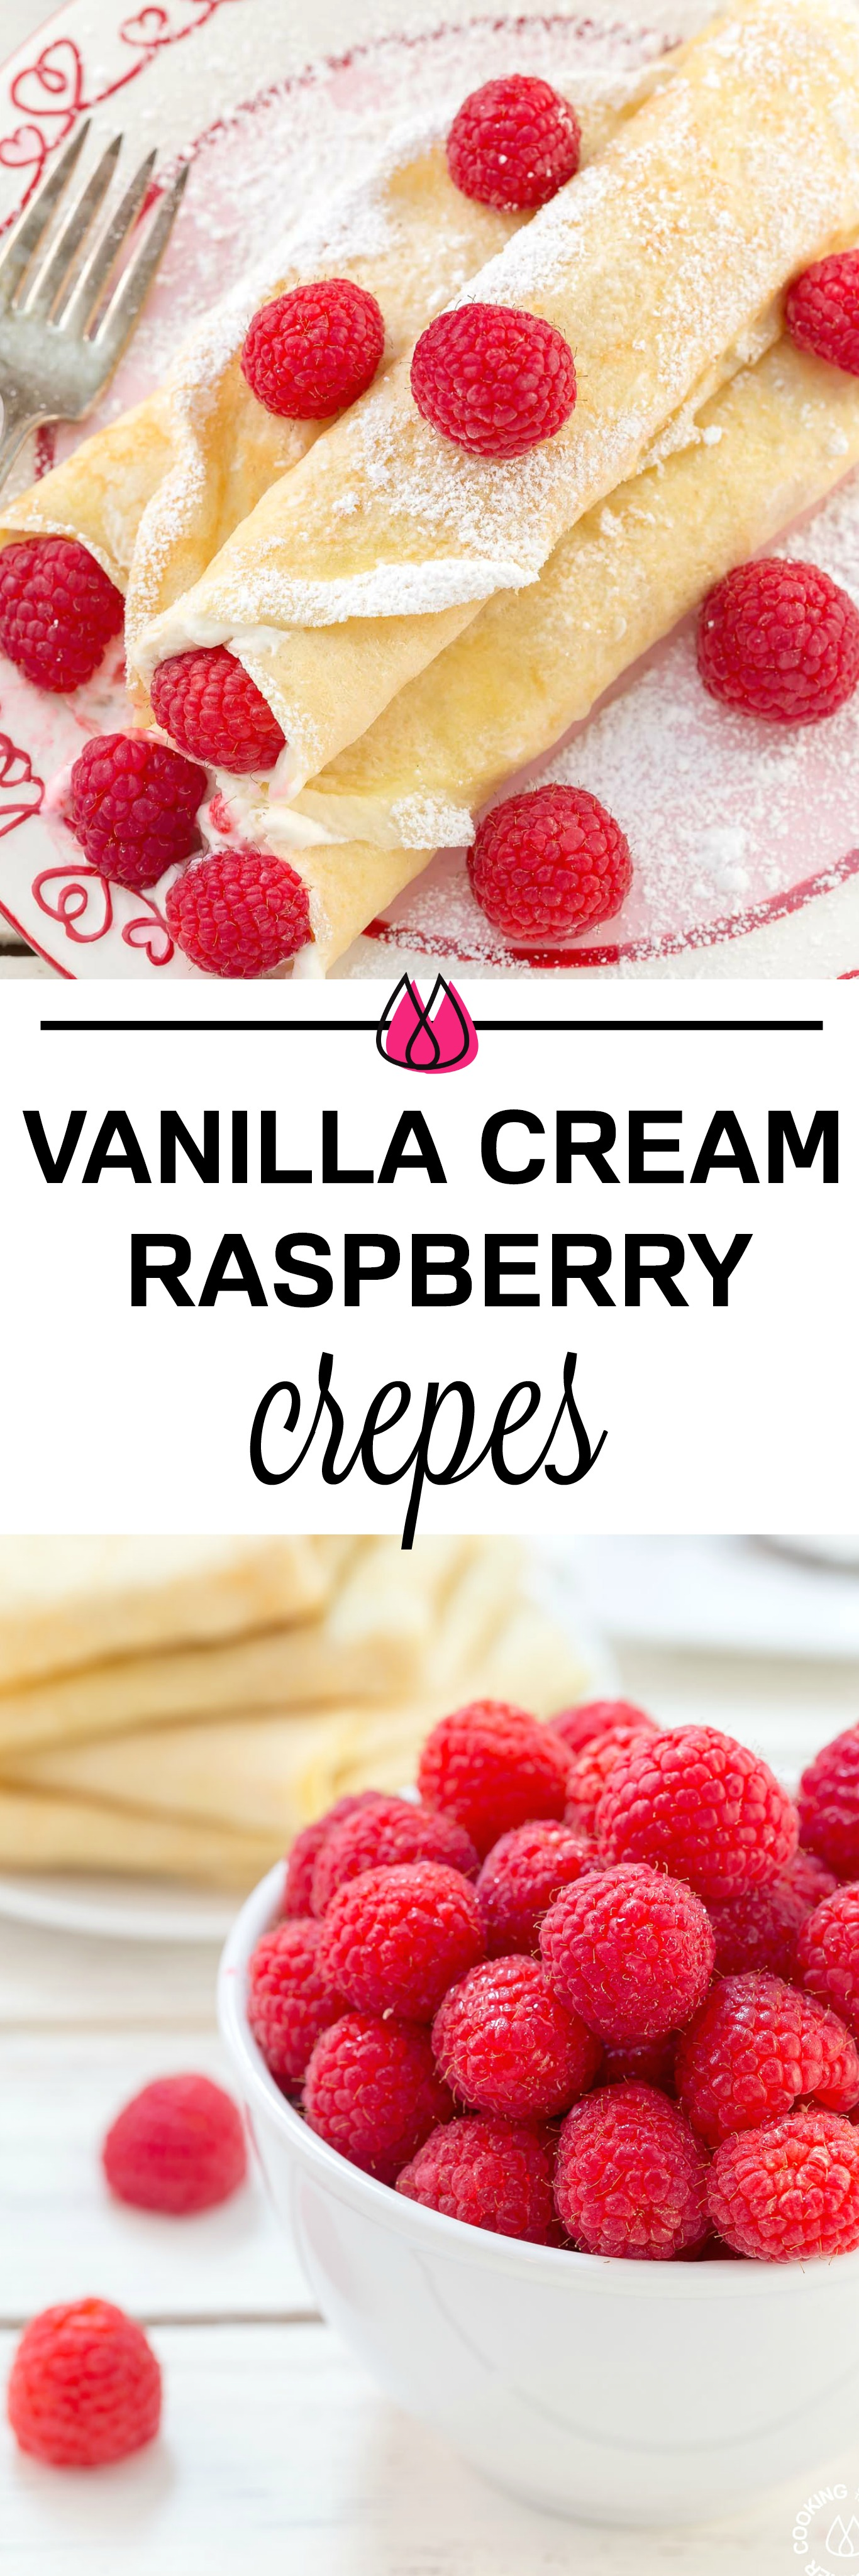 These Raspberry Vanilla Cream Crepes make the perfect dessert for Valentine's Day or any time you want to impress that someone special.  The crepes have a creamy vanilla filling and the fresh raspberries add a pop of color. #crepes #vanillacream #dessert #valentineday